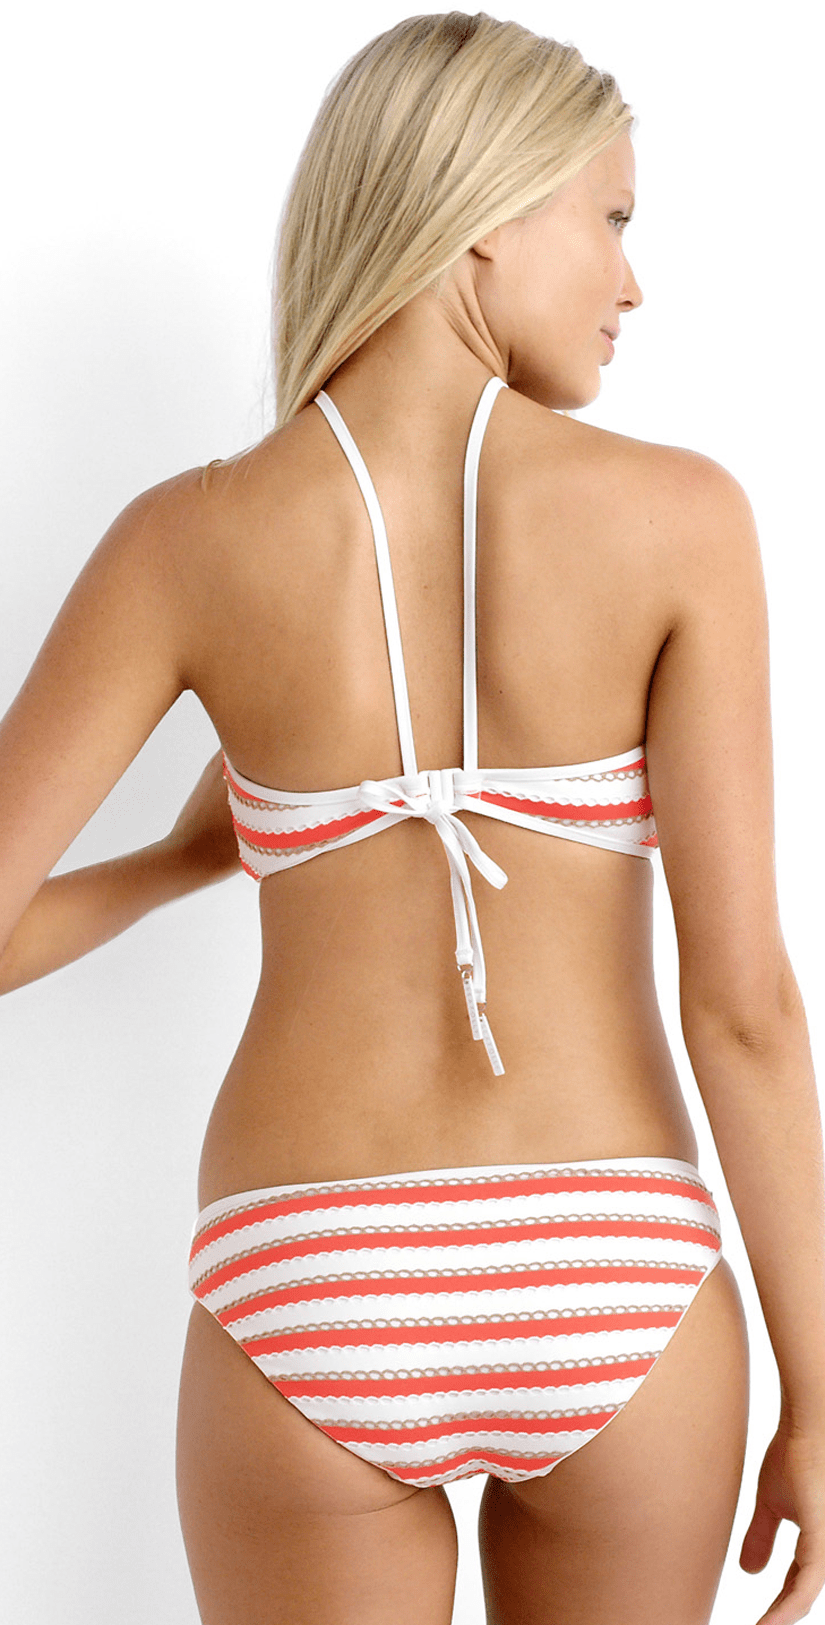 Seafolly Coast to Coast High Neck Bikini Top 30392-983: